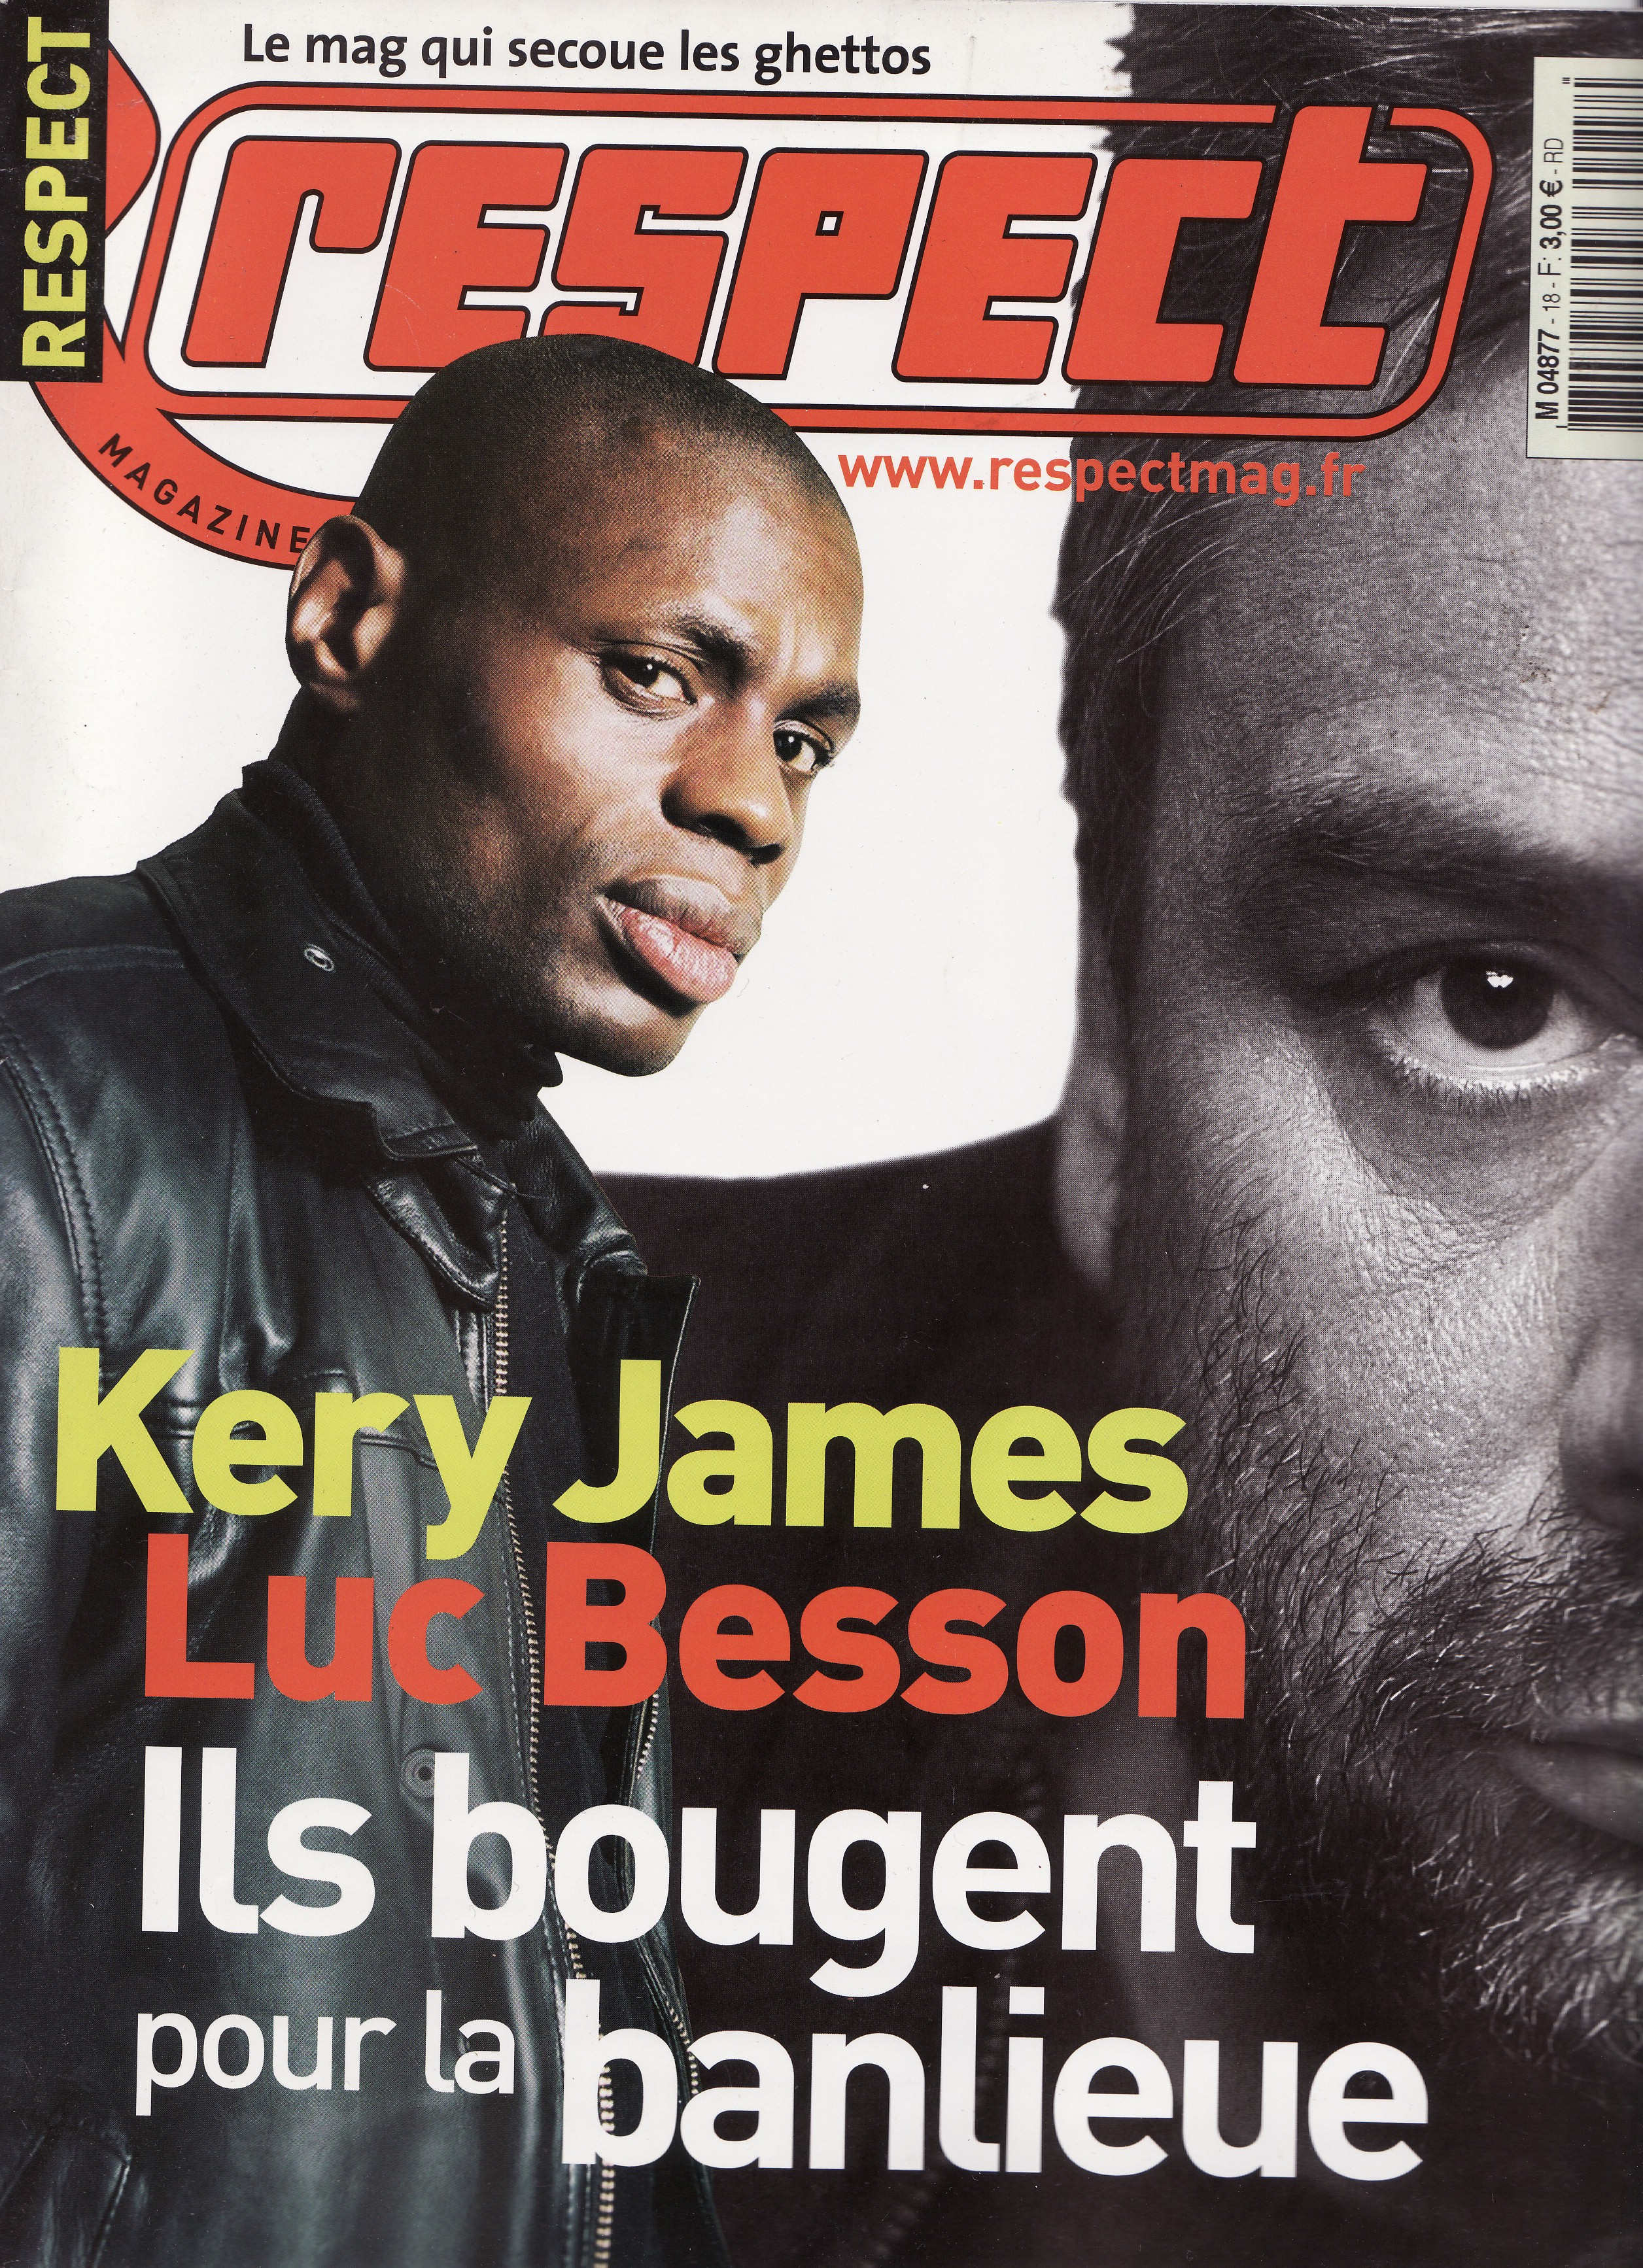 RESPECT MAG 2009